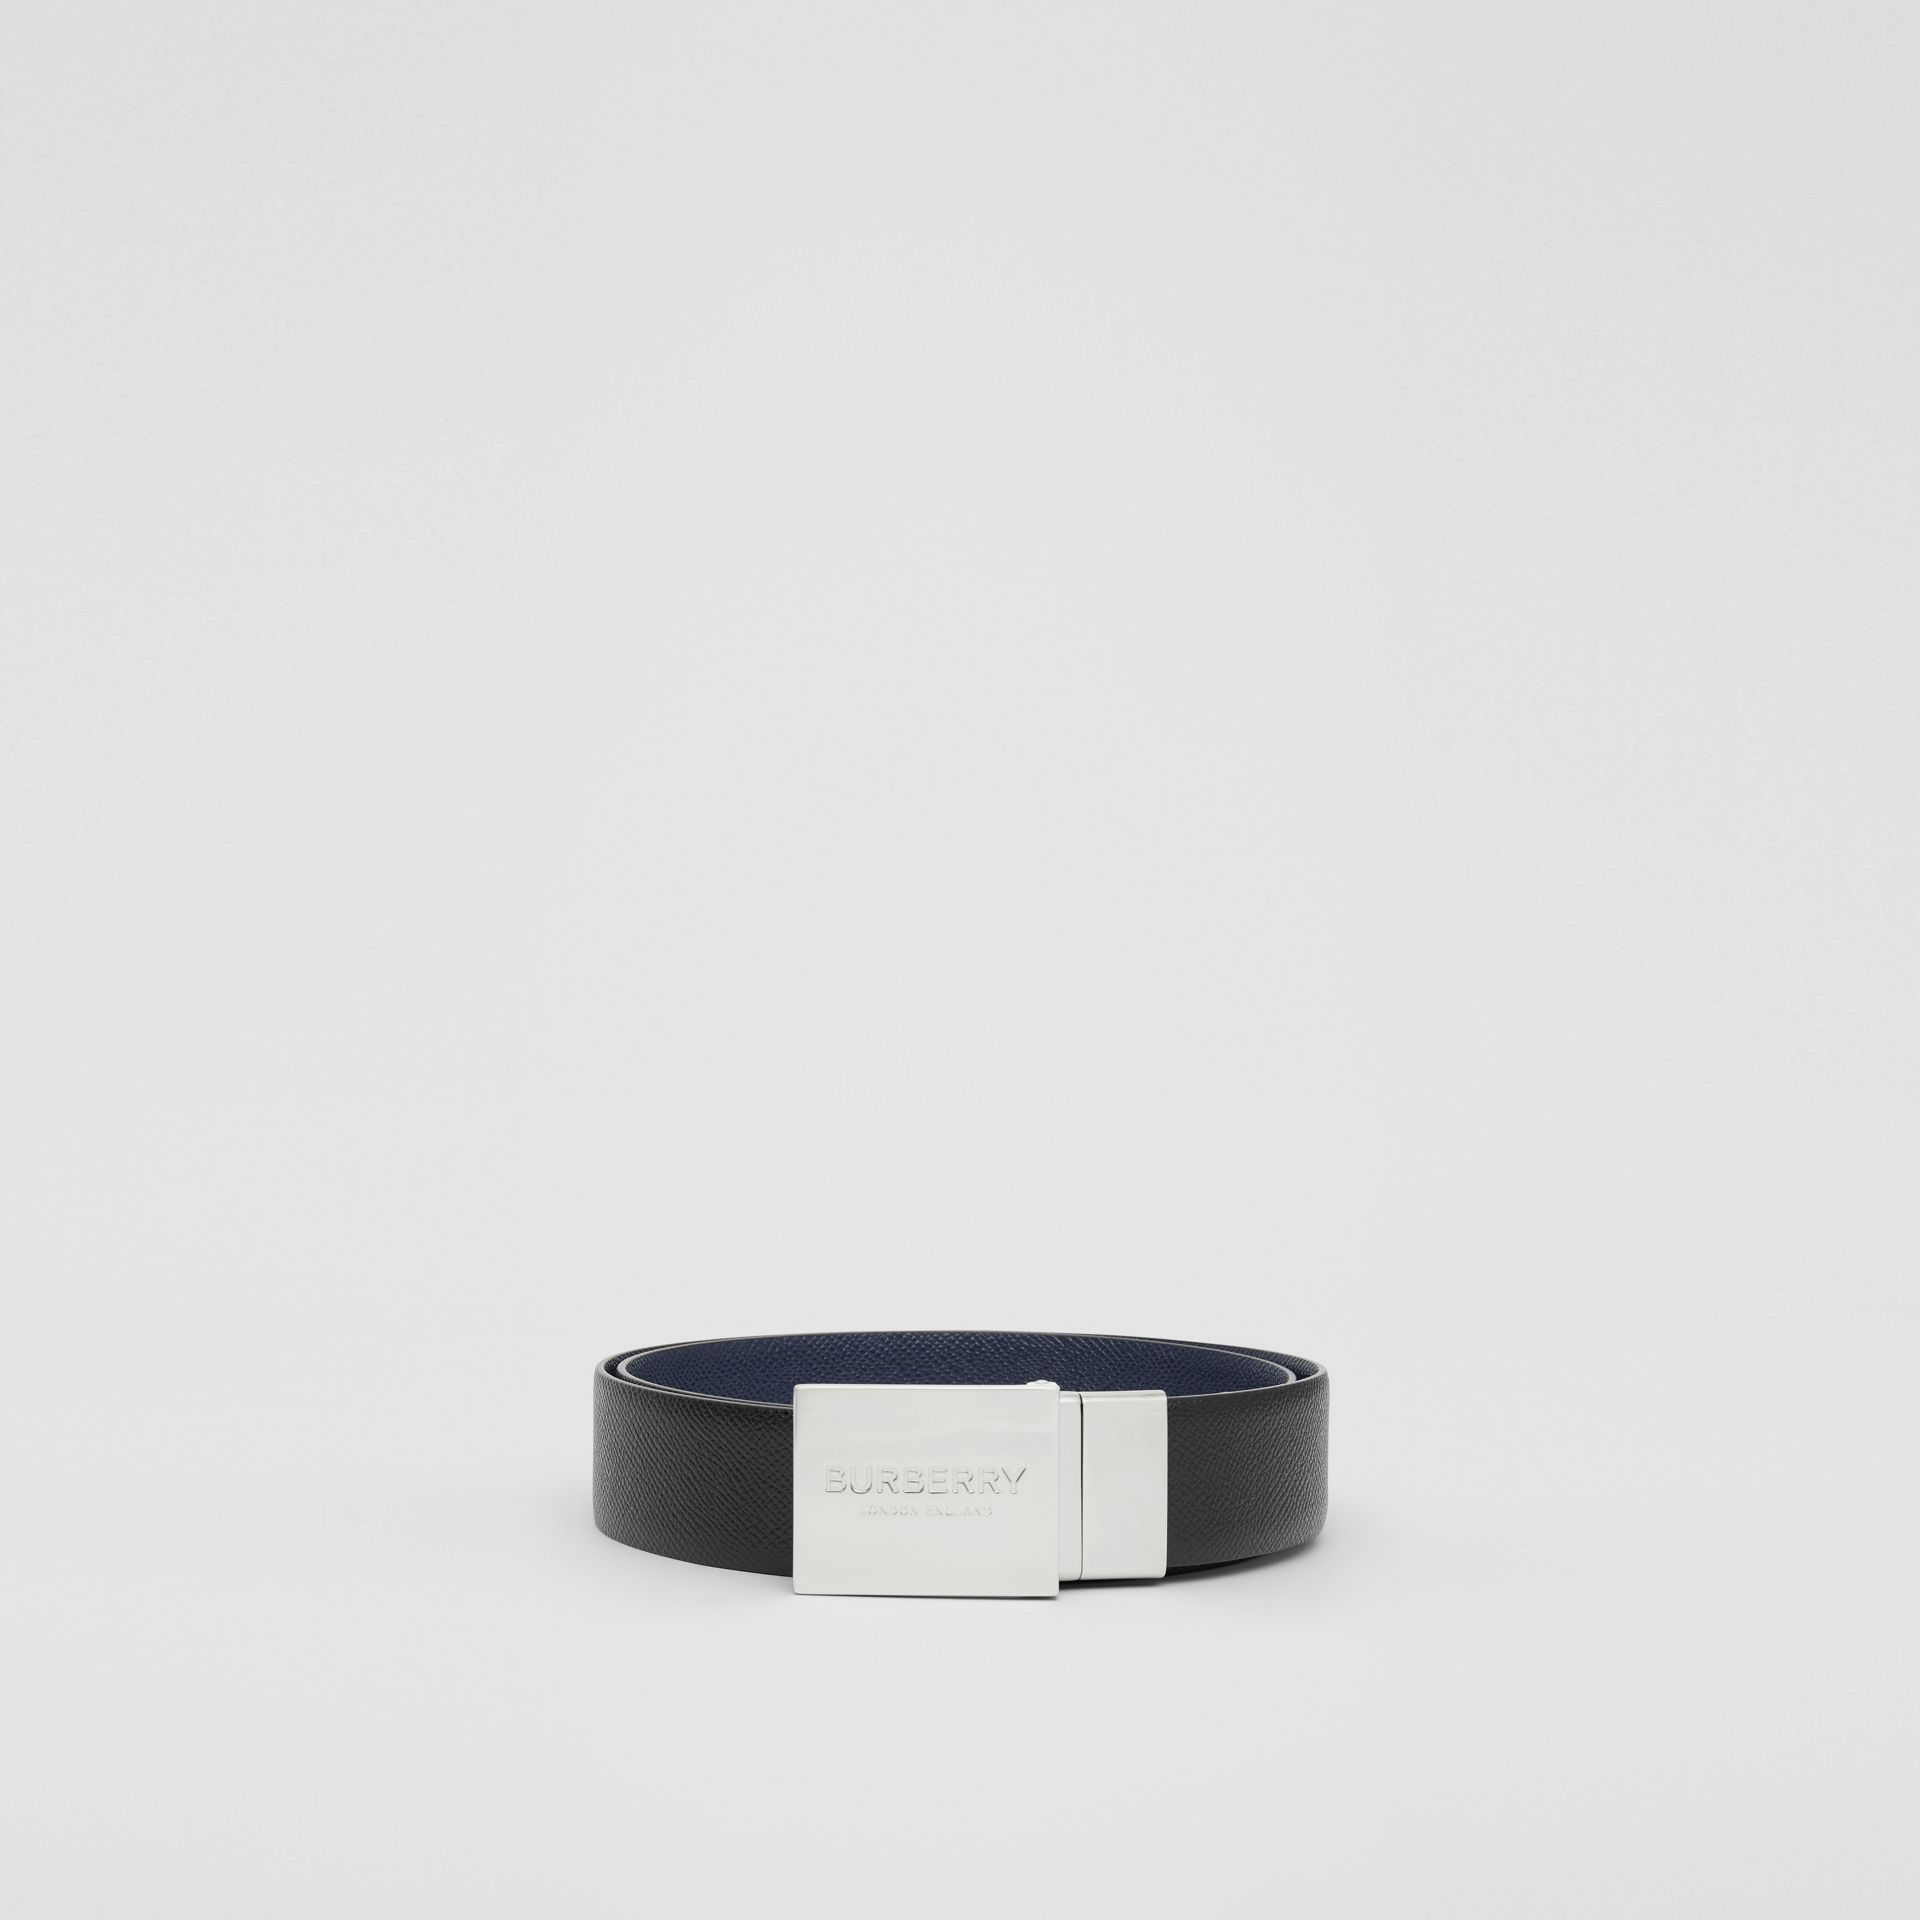 Reversible Plaque Buckle Grainy Leather Belt in Black/navy - Men | Burberry - gallery image 3